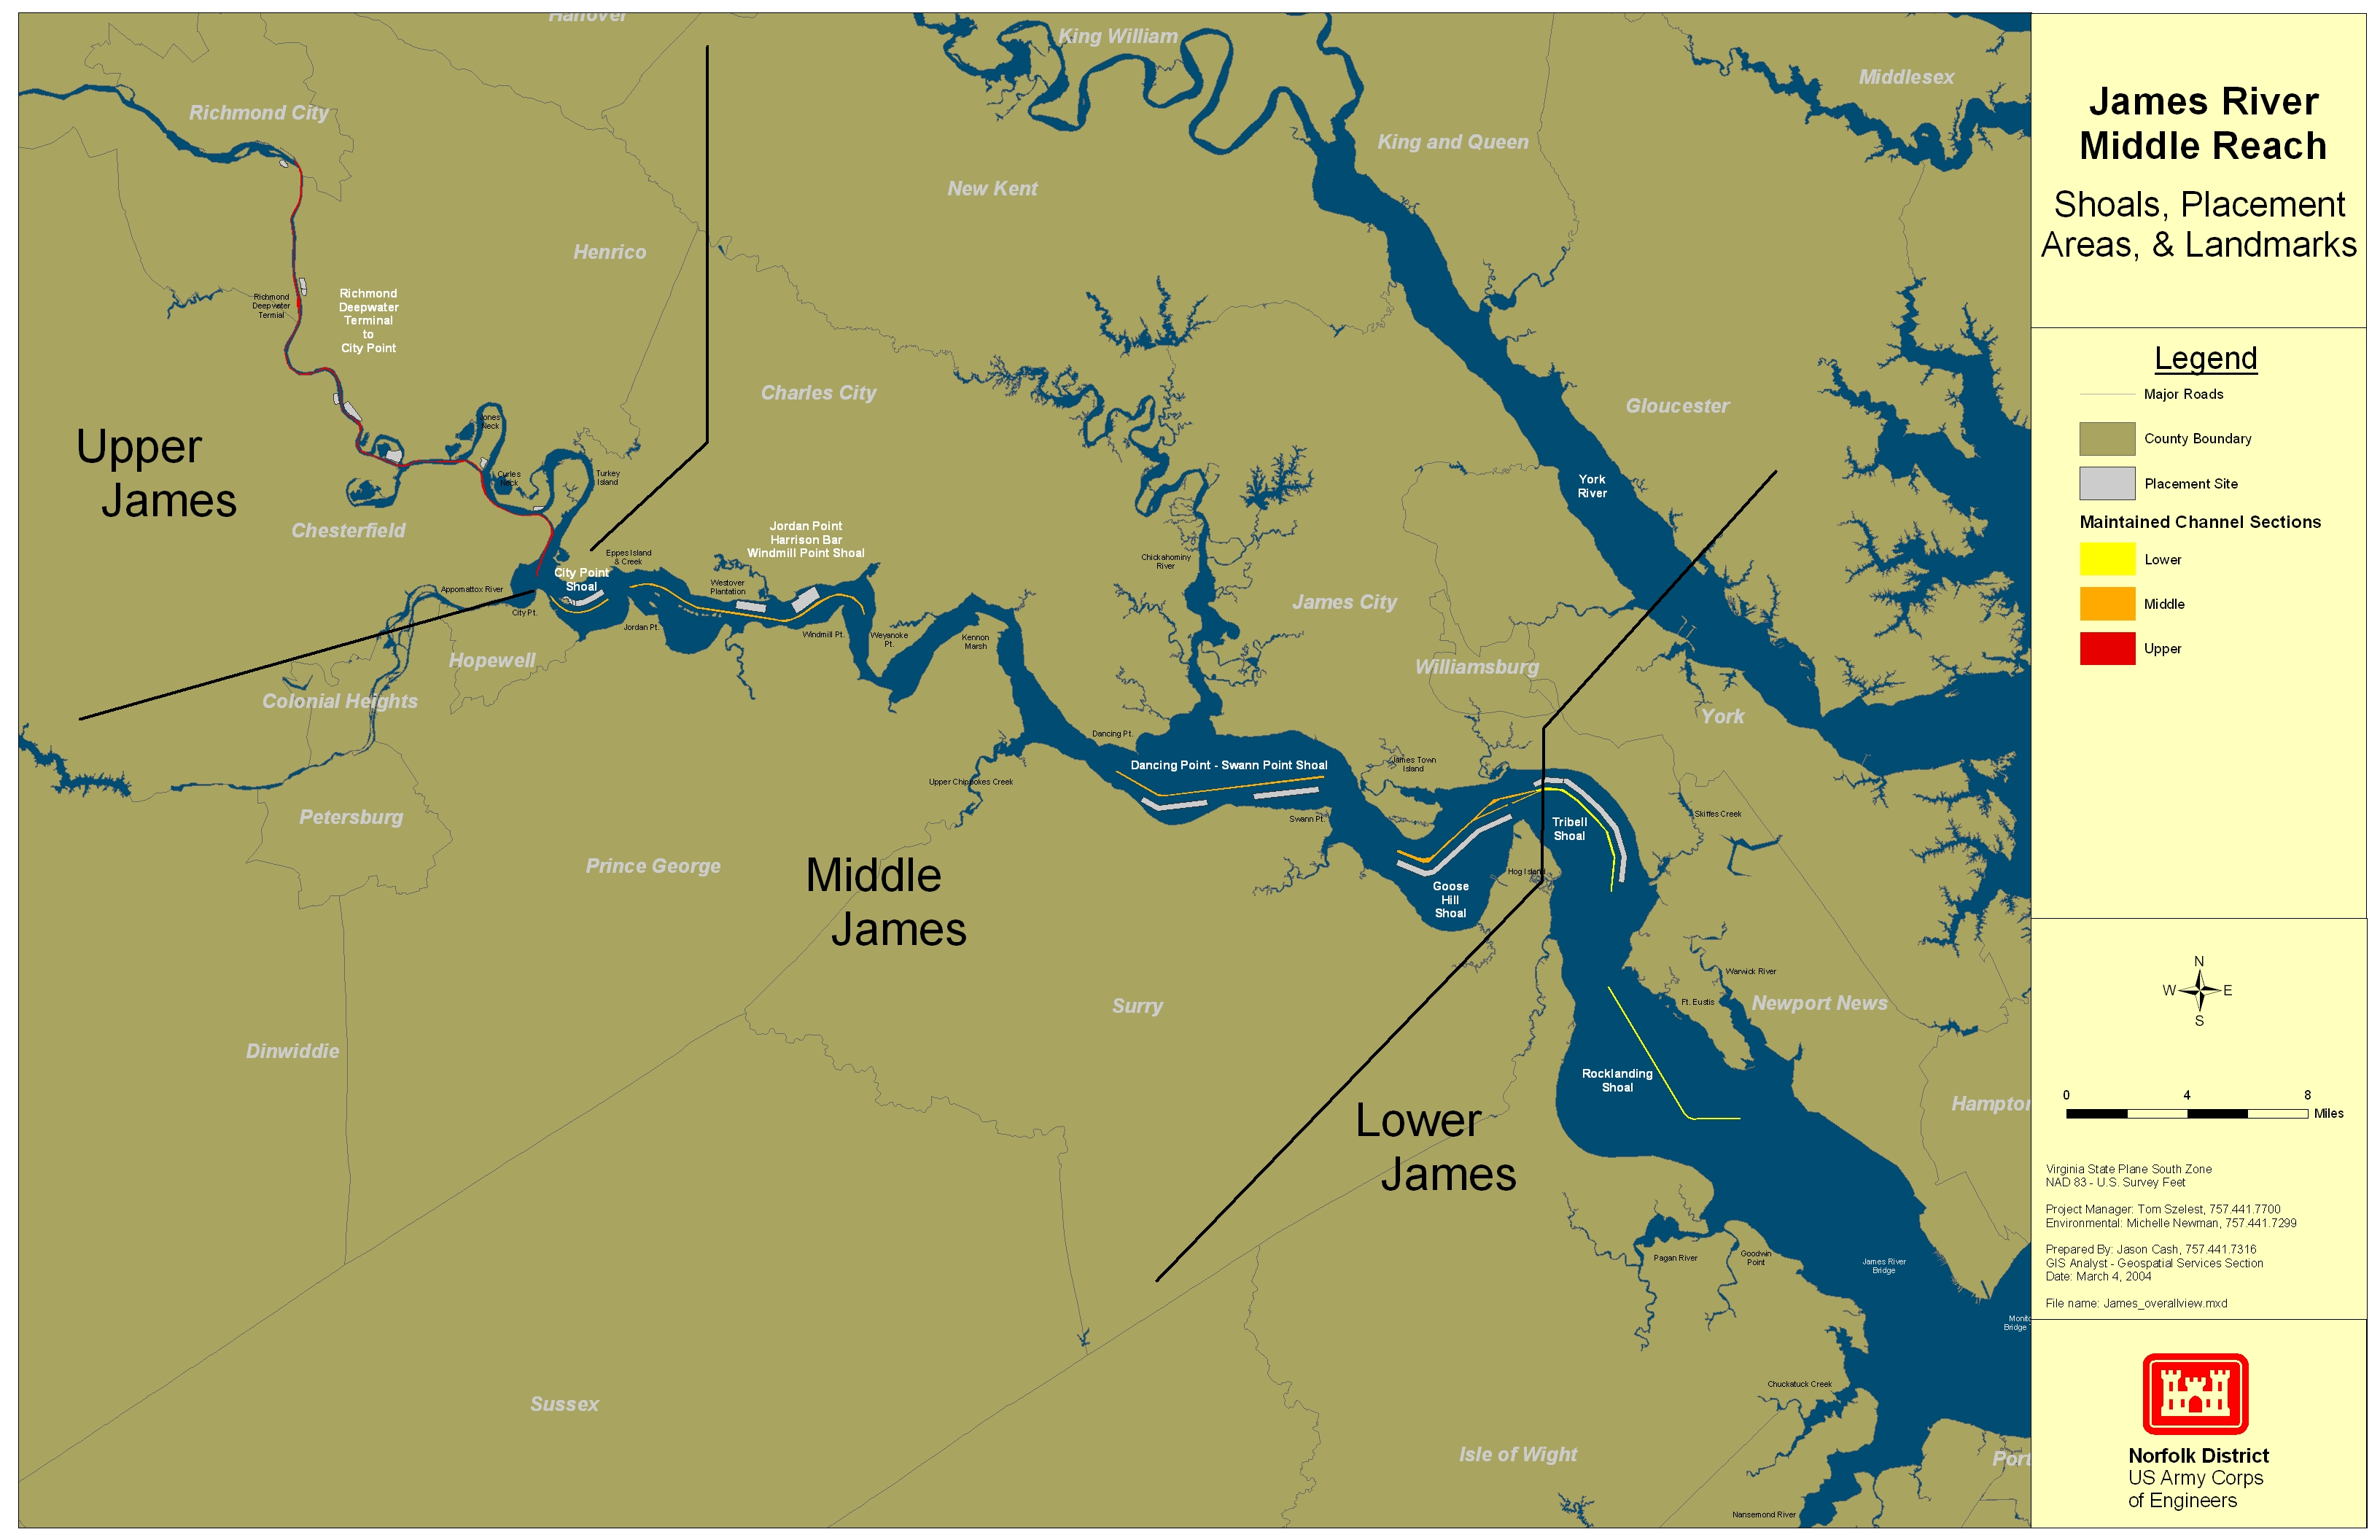 James River Navigation Channel Map